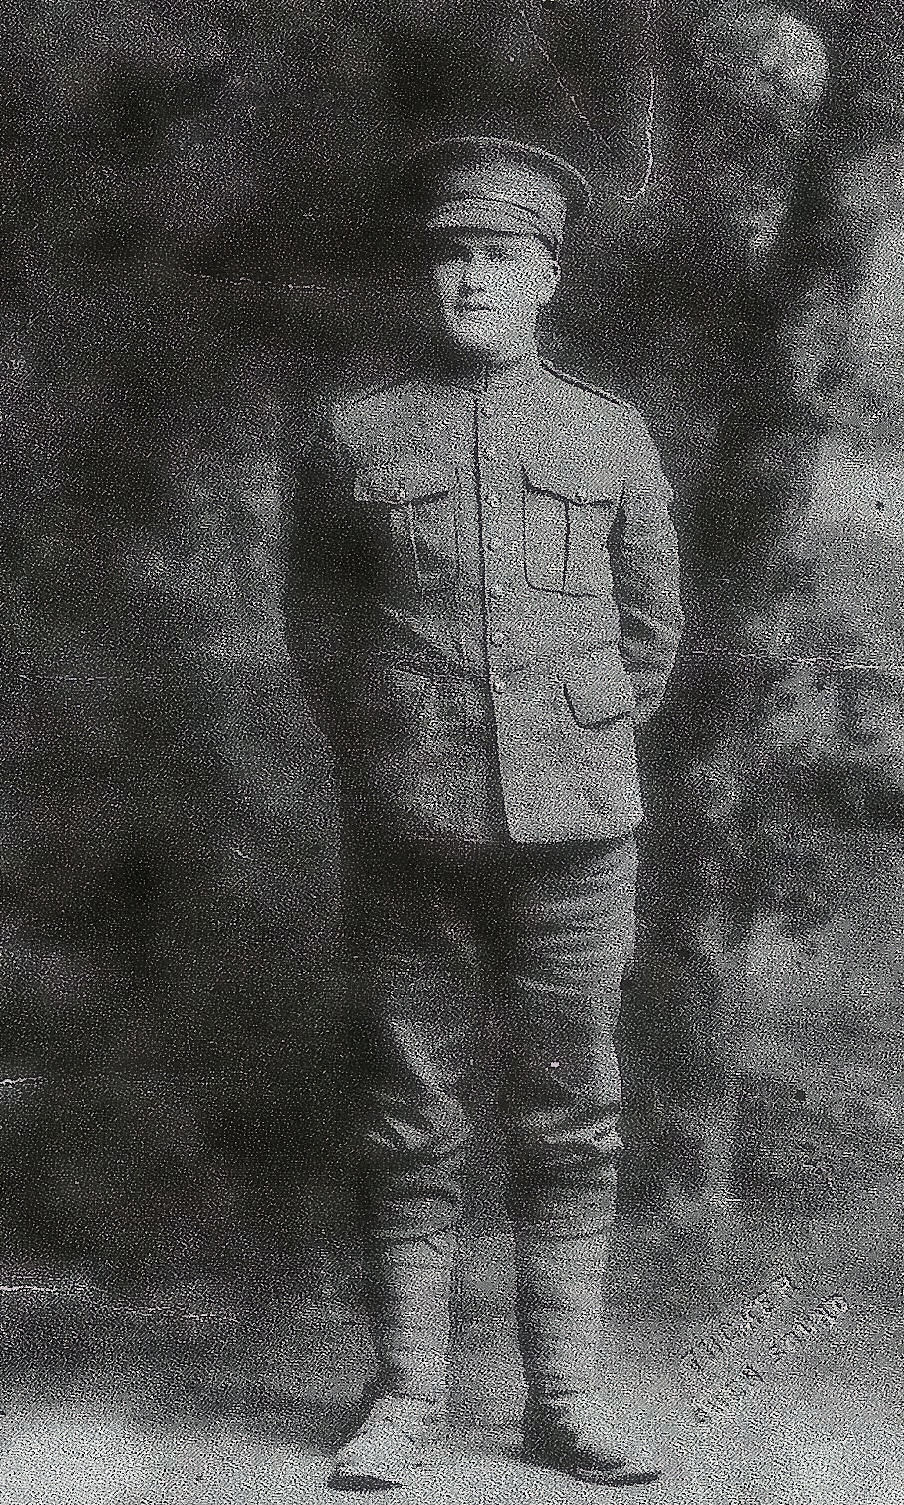 Photo of William Earl Foster– Brother of Private Robert Wellington Foster who was KIA on April 22, 1918 and brother of Sgt. Wilmer Alexander Foster who was KIA in WWII.